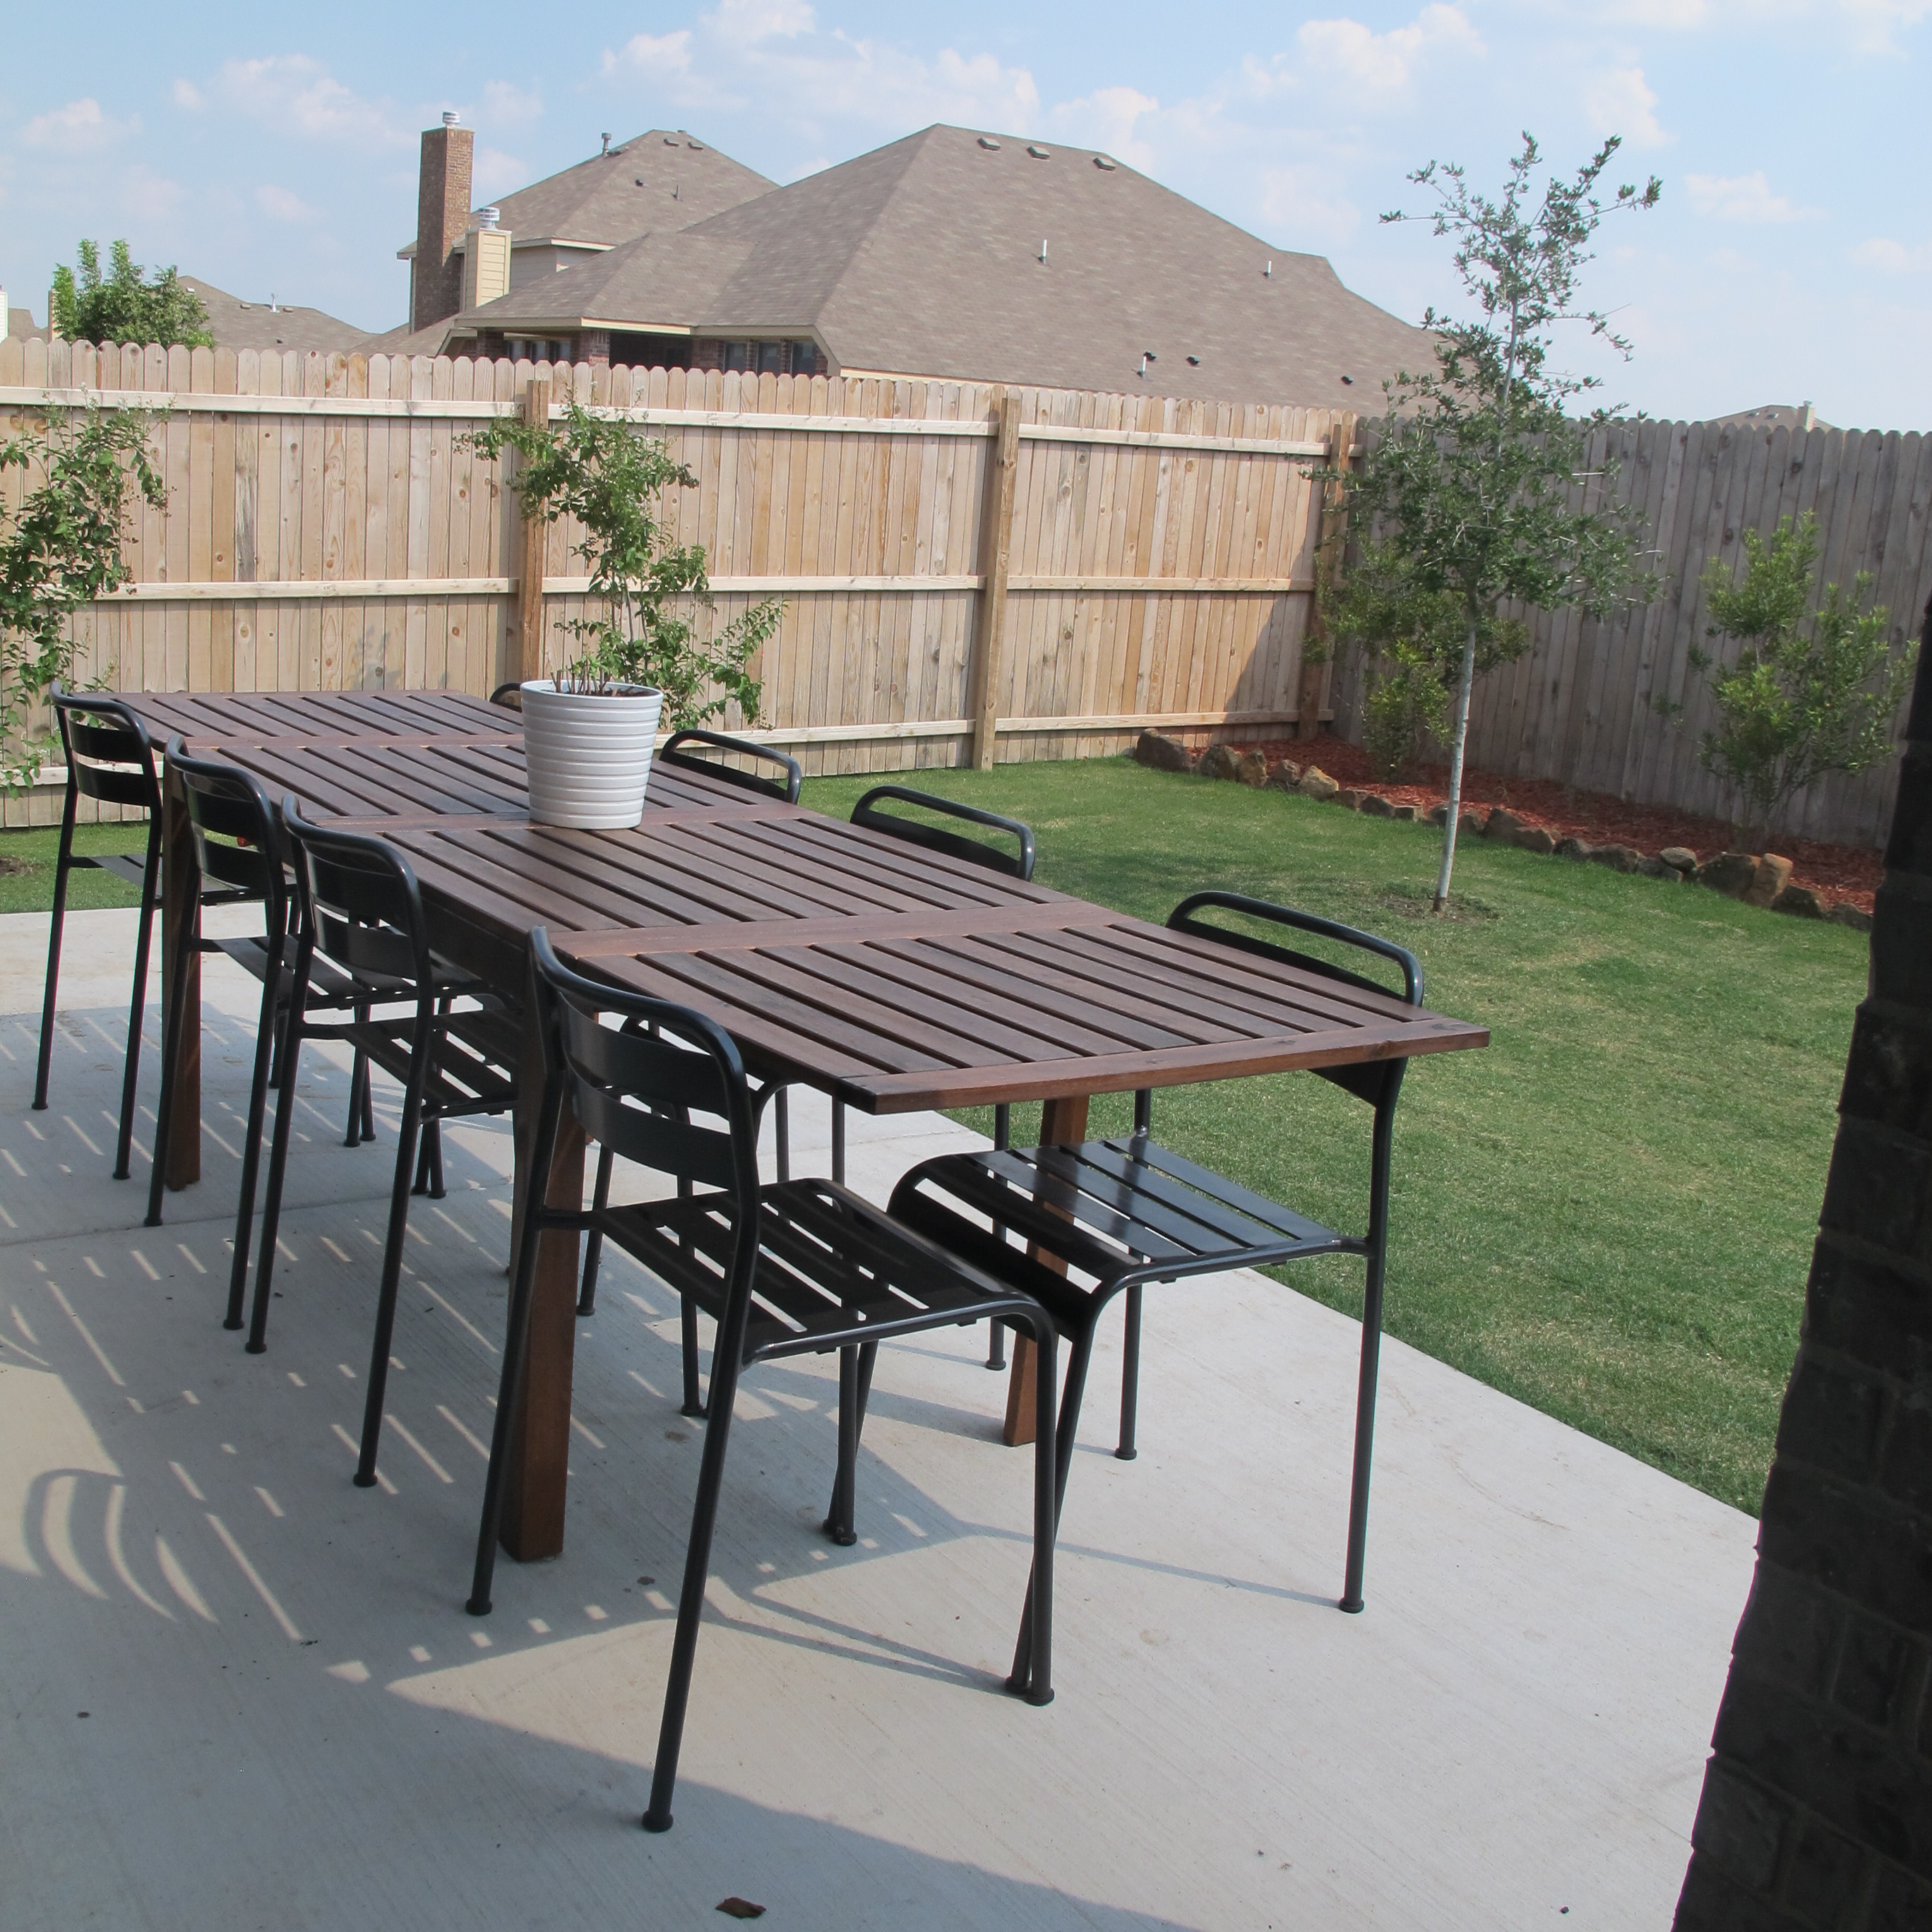 Ikea Outdoor Furniture Waterproofing Our Outdoor Table Operation Home